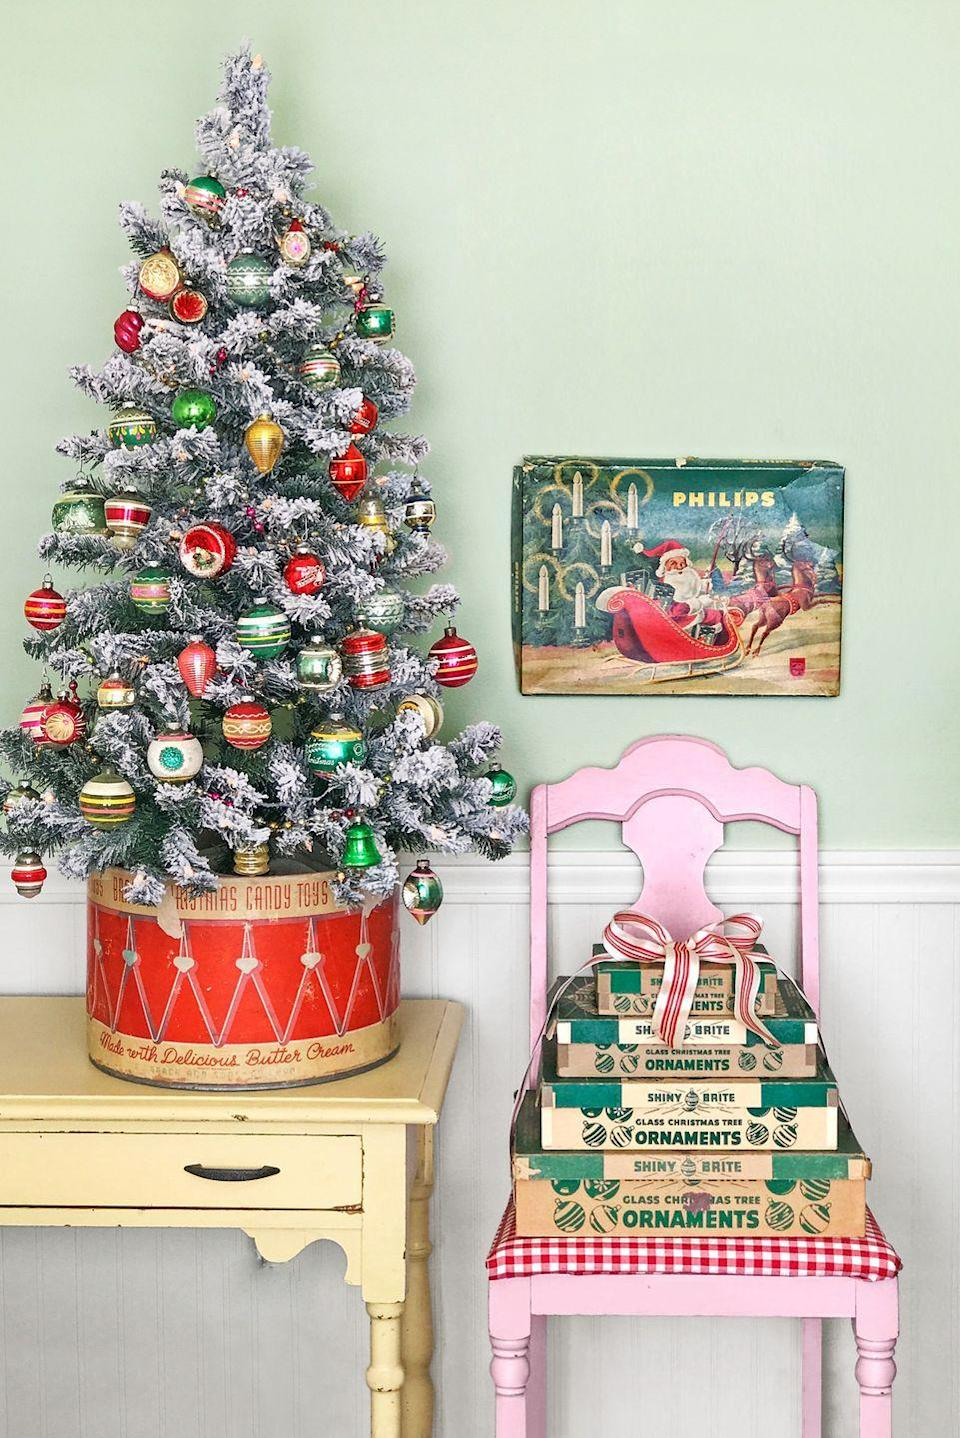 """<p>What an adorable, tiny tree! We love the idea of using a vintage candy box as a tree stand for any <a href=""""https://www.countryliving.com/home-design/decorating-ideas/g316/decorate-mini-christmas-trees/"""" rel=""""nofollow noopener"""" target=""""_blank"""" data-ylk=""""slk:mini tree"""" class=""""link rapid-noclick-resp"""">mini tree</a>. A cookie tin would work beautifully too.</p><p><a class=""""link rapid-noclick-resp"""" href=""""https://www.amazon.com/iPEGTOP-Glittering-Shatterproof-Christmas-Ornaments/dp/B07D8N86GV?tag=syn-yahoo-20&ascsubtag=%5Bartid%7C10050.g.1247%5Bsrc%7Cyahoo-us"""" rel=""""nofollow noopener"""" target=""""_blank"""" data-ylk=""""slk:SHOP CHRISTMAS ORNAMENTS"""">SHOP CHRISTMAS ORNAMENTS</a></p>"""